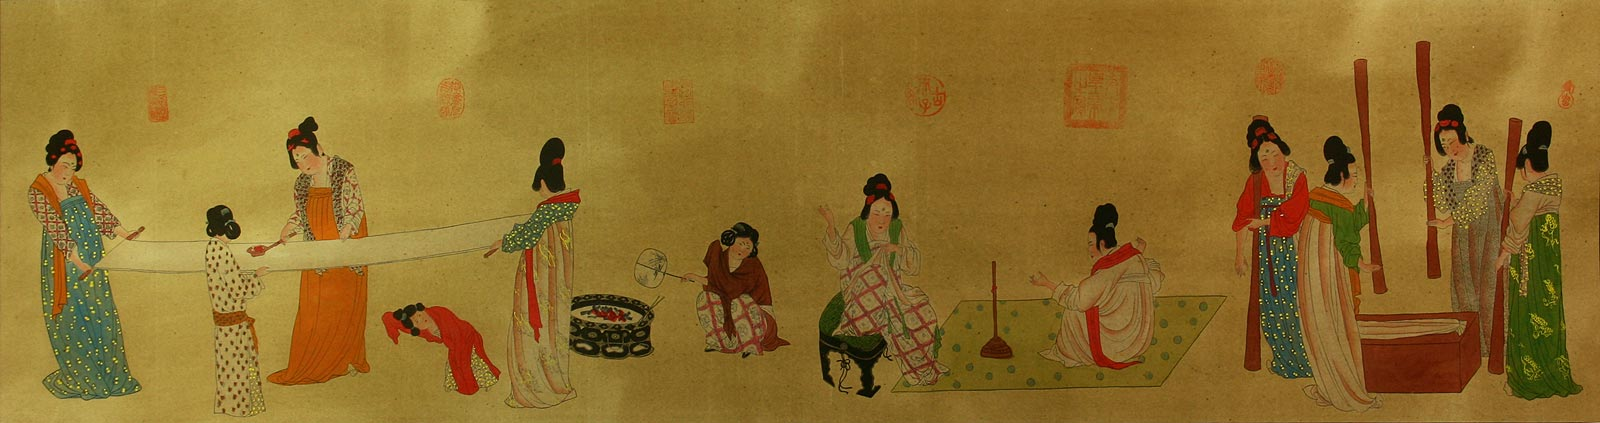 Tang Dynasty Ladies Daily Chores - Partial Print Painting